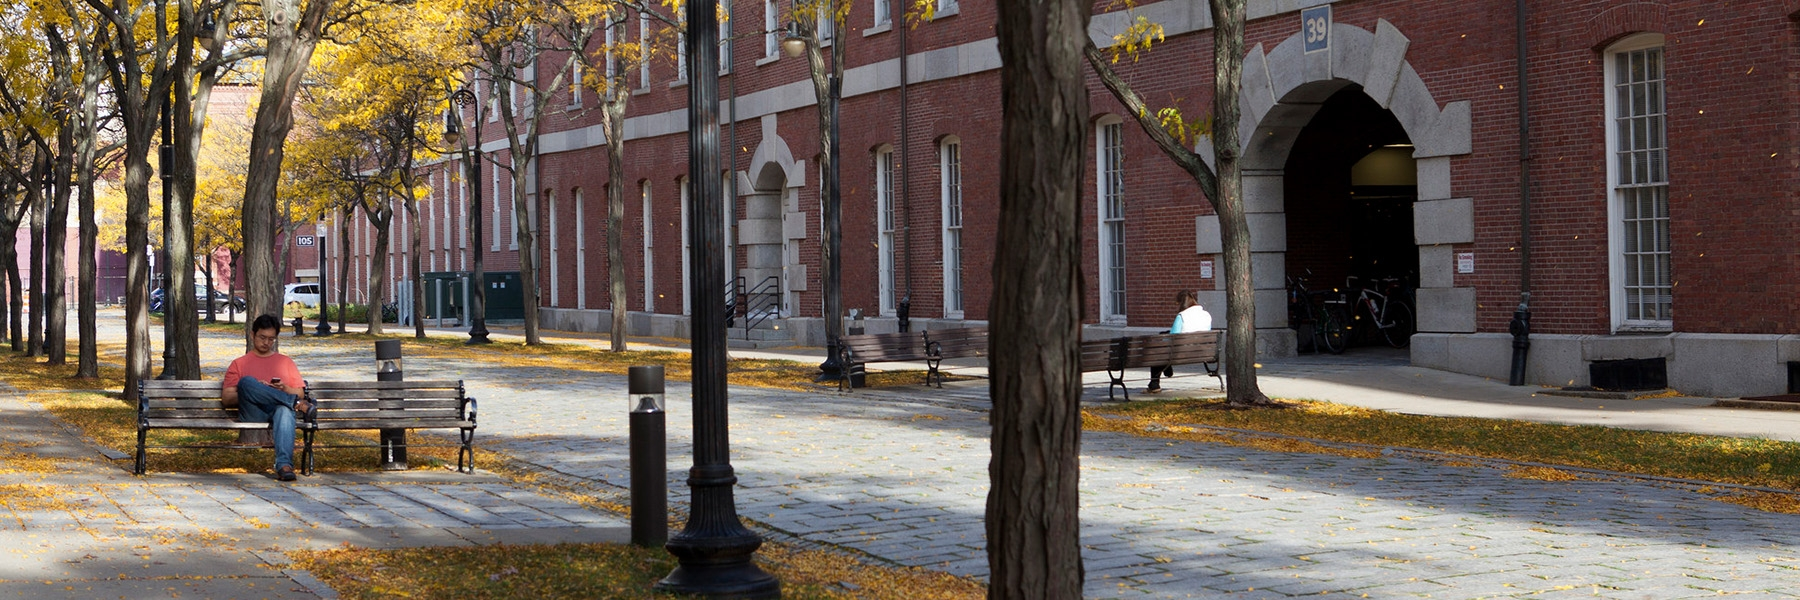 Historic Charlestown in the fall shows a man on a bench under yellow foliage